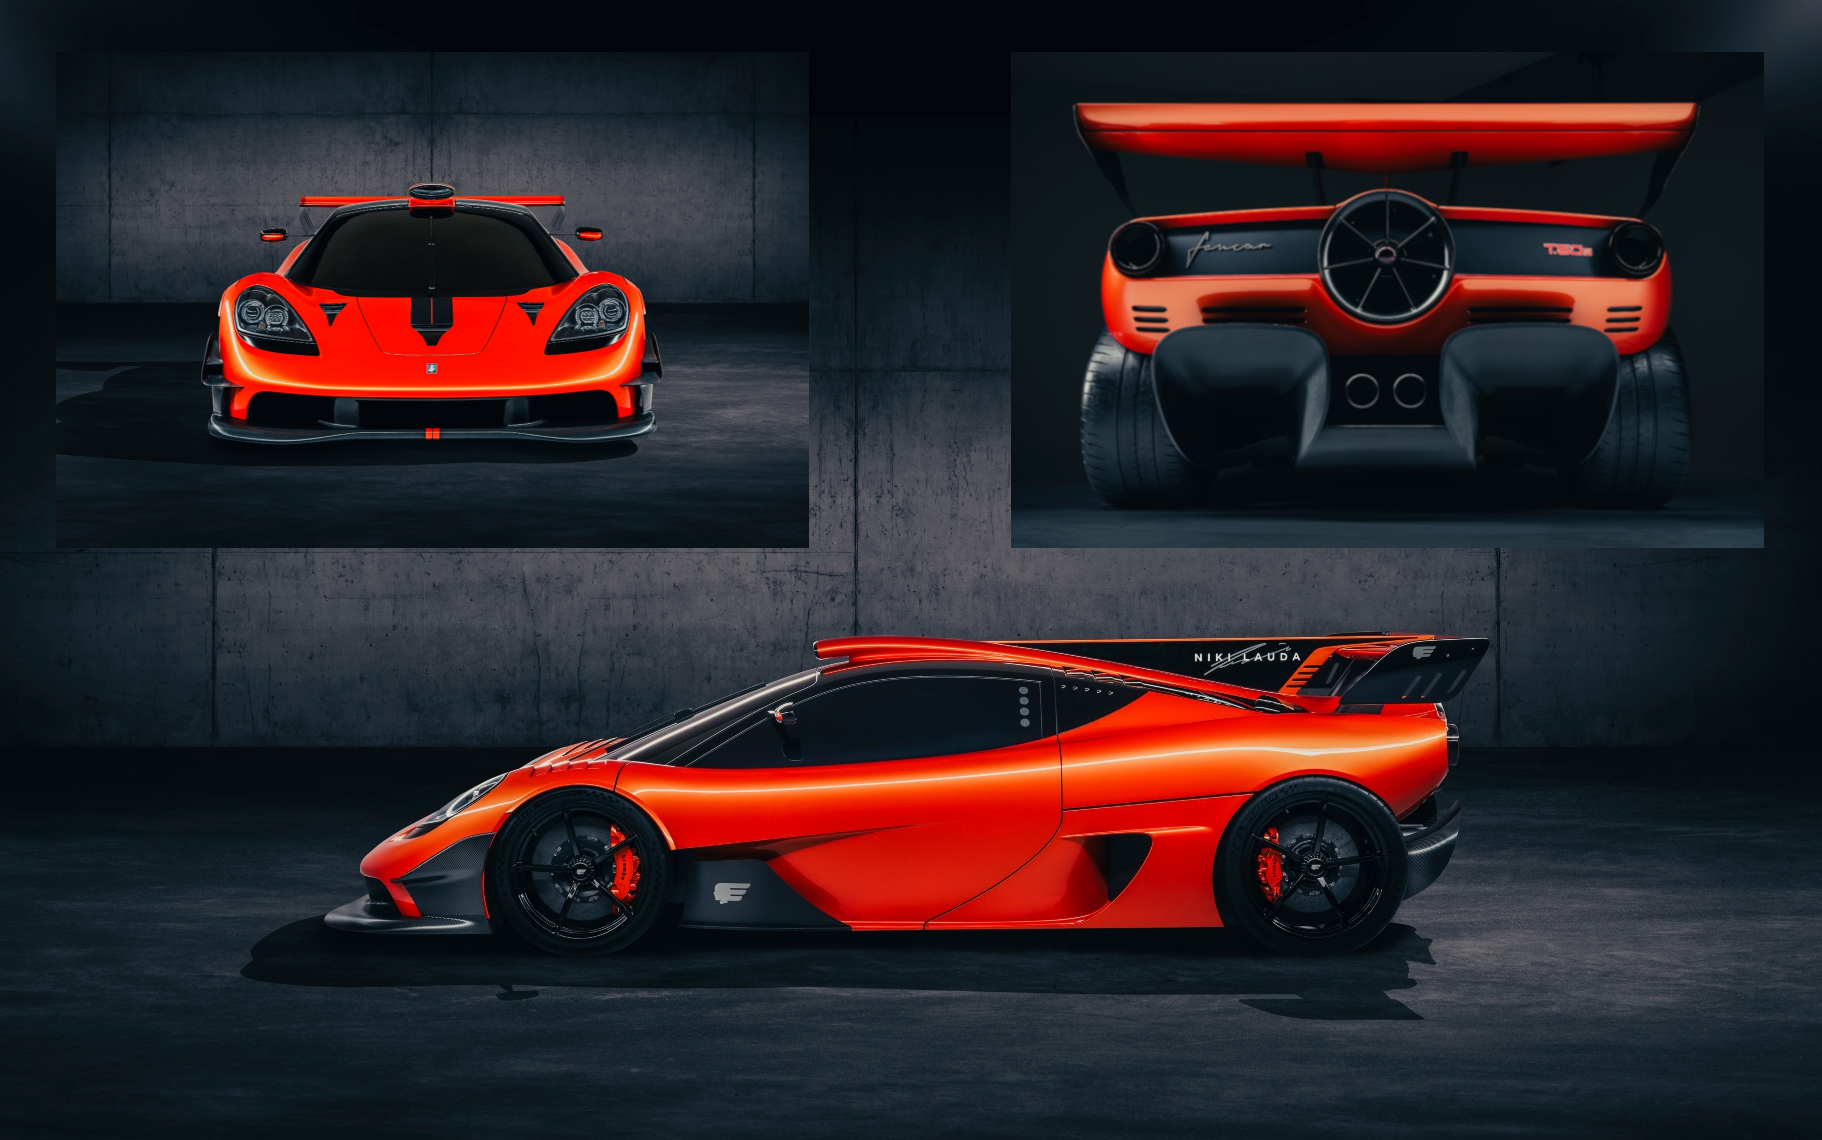 Gordon Murray pays tribute to Niki Lauda with lightweight, limited-edition T.50s that will cost £3.7m